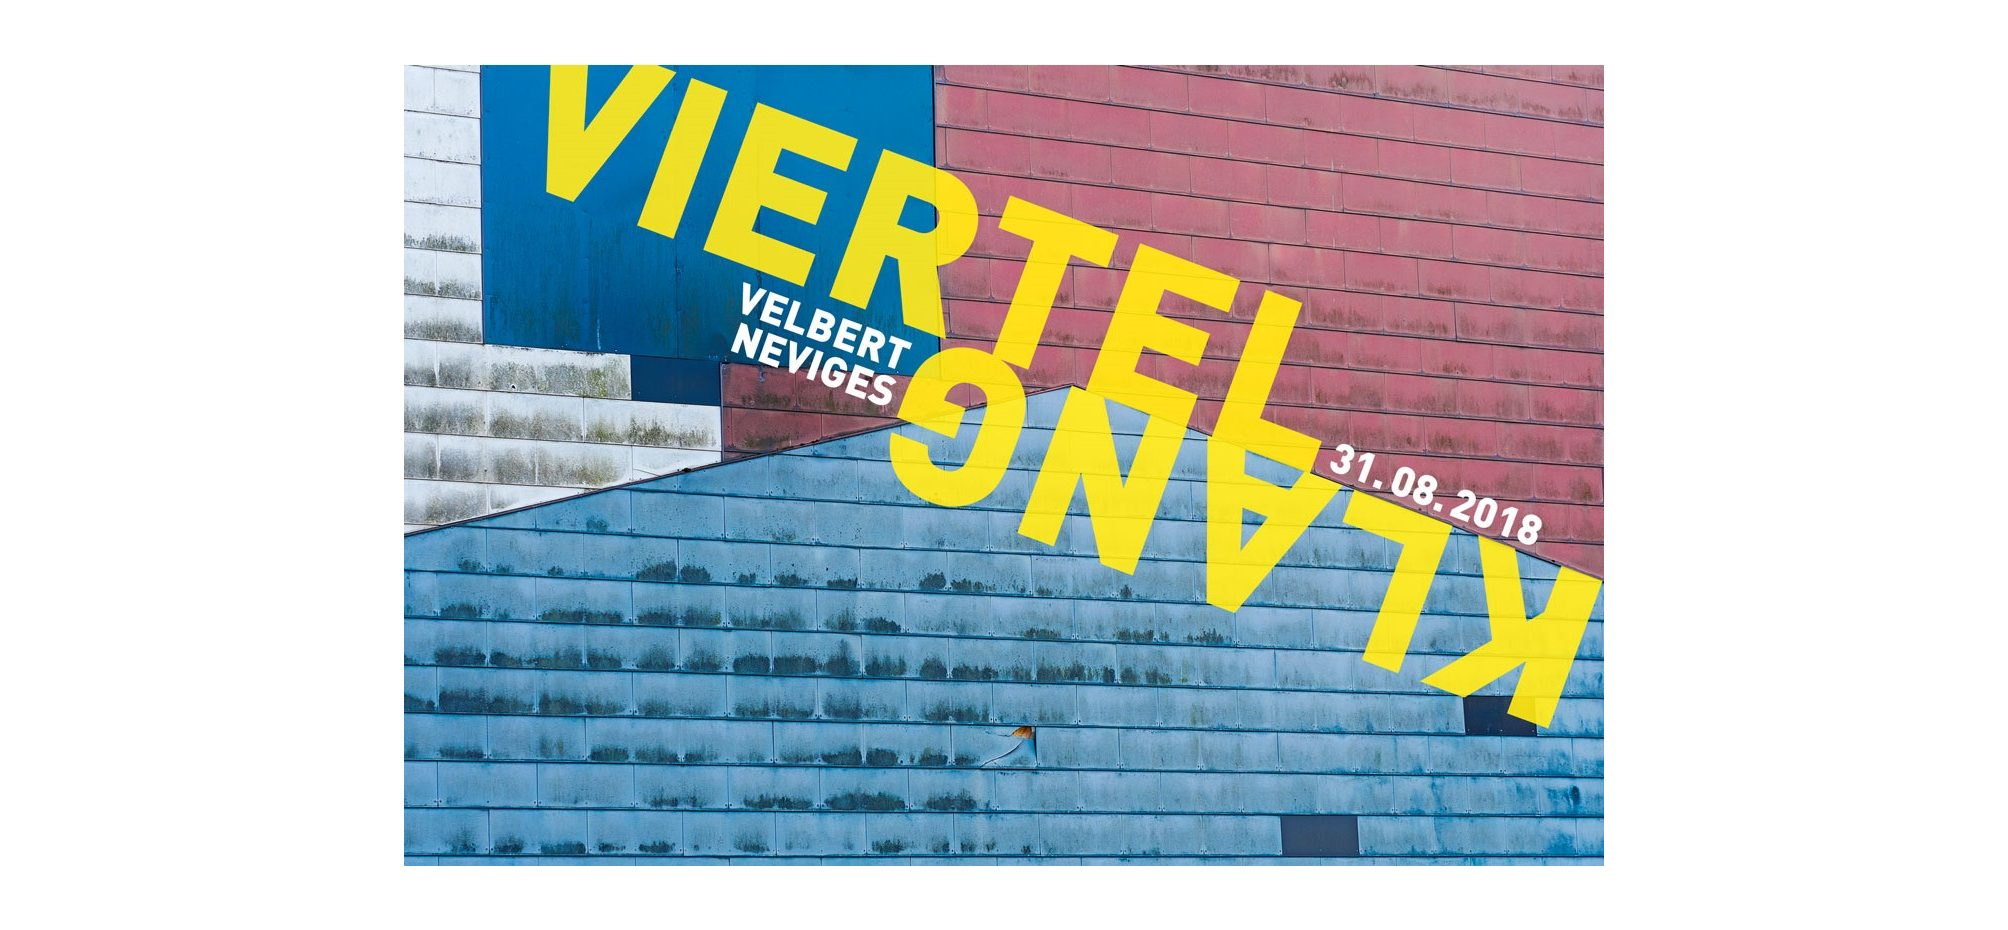 Viertelklang in Velbert-Neviges am 31.08.2018